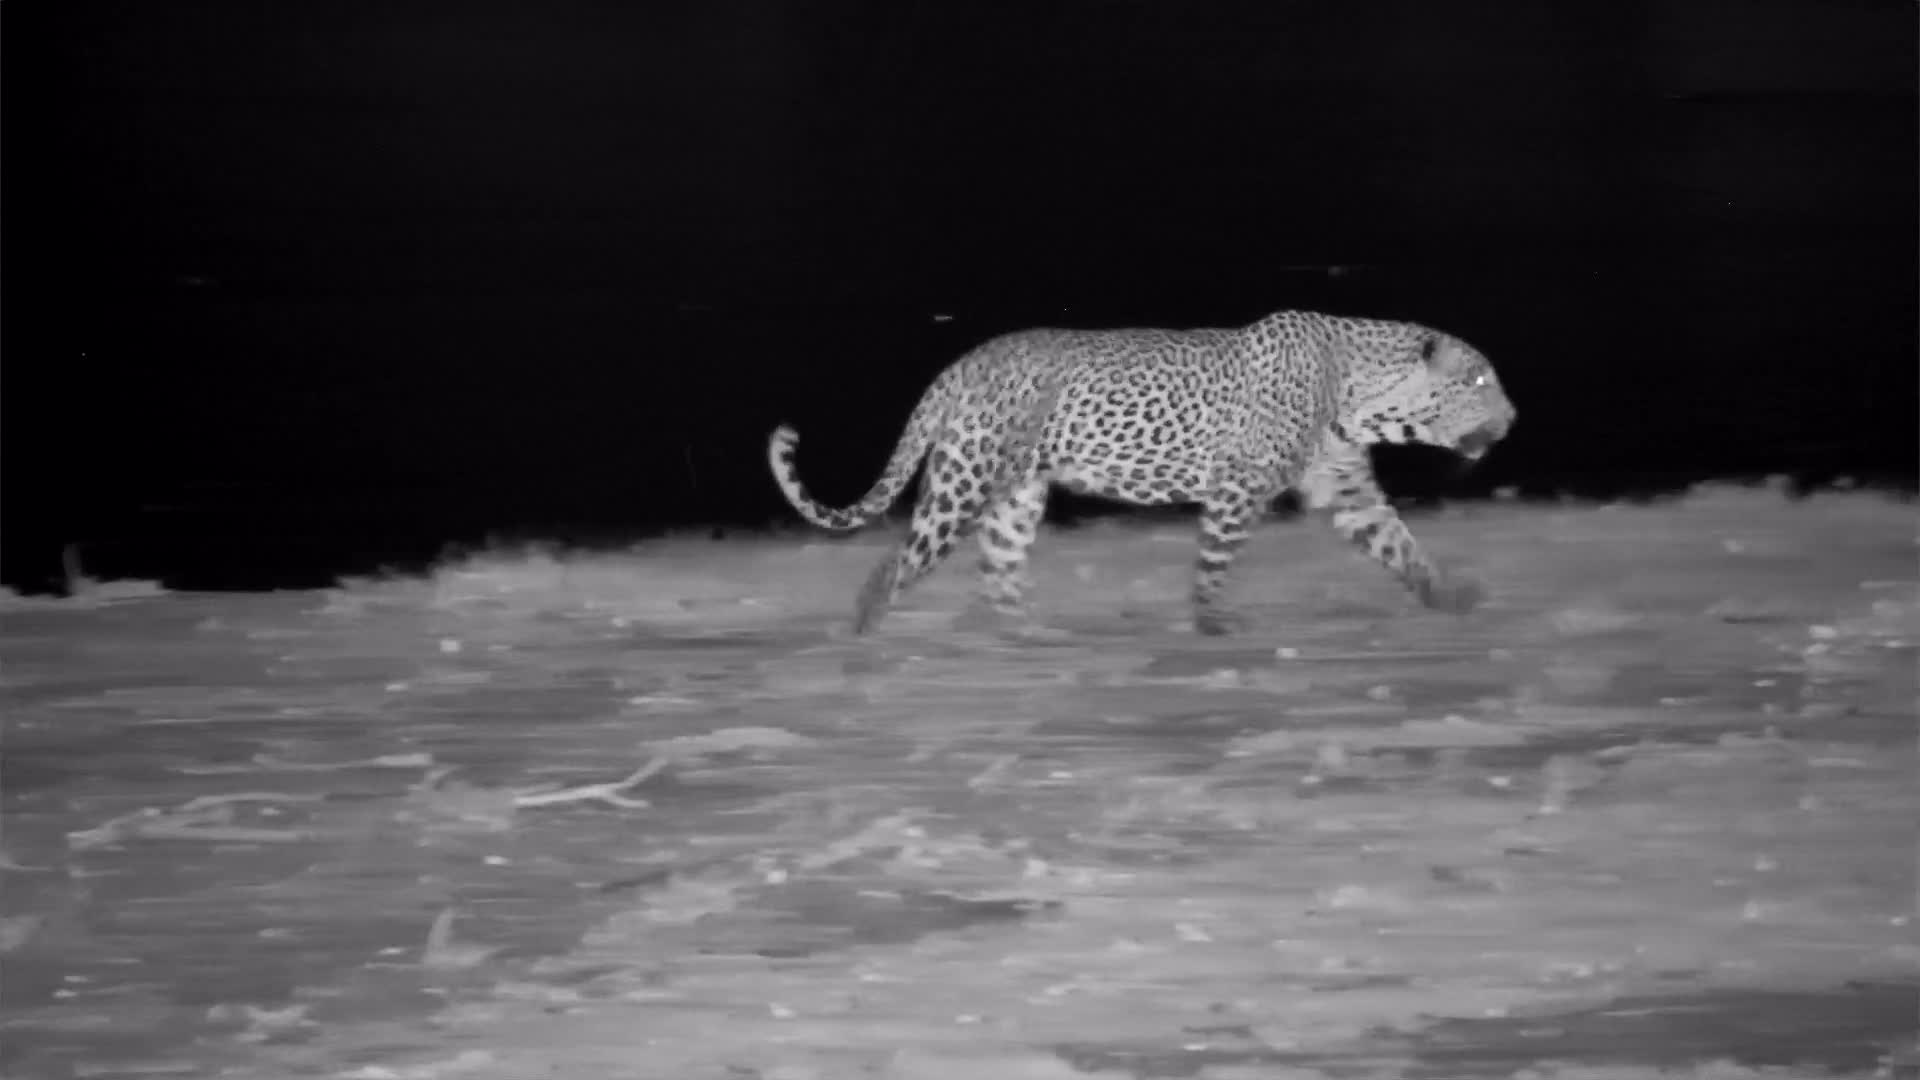 VIDEO: Leopard drinks and then passes an Elephant on the way back to the bush